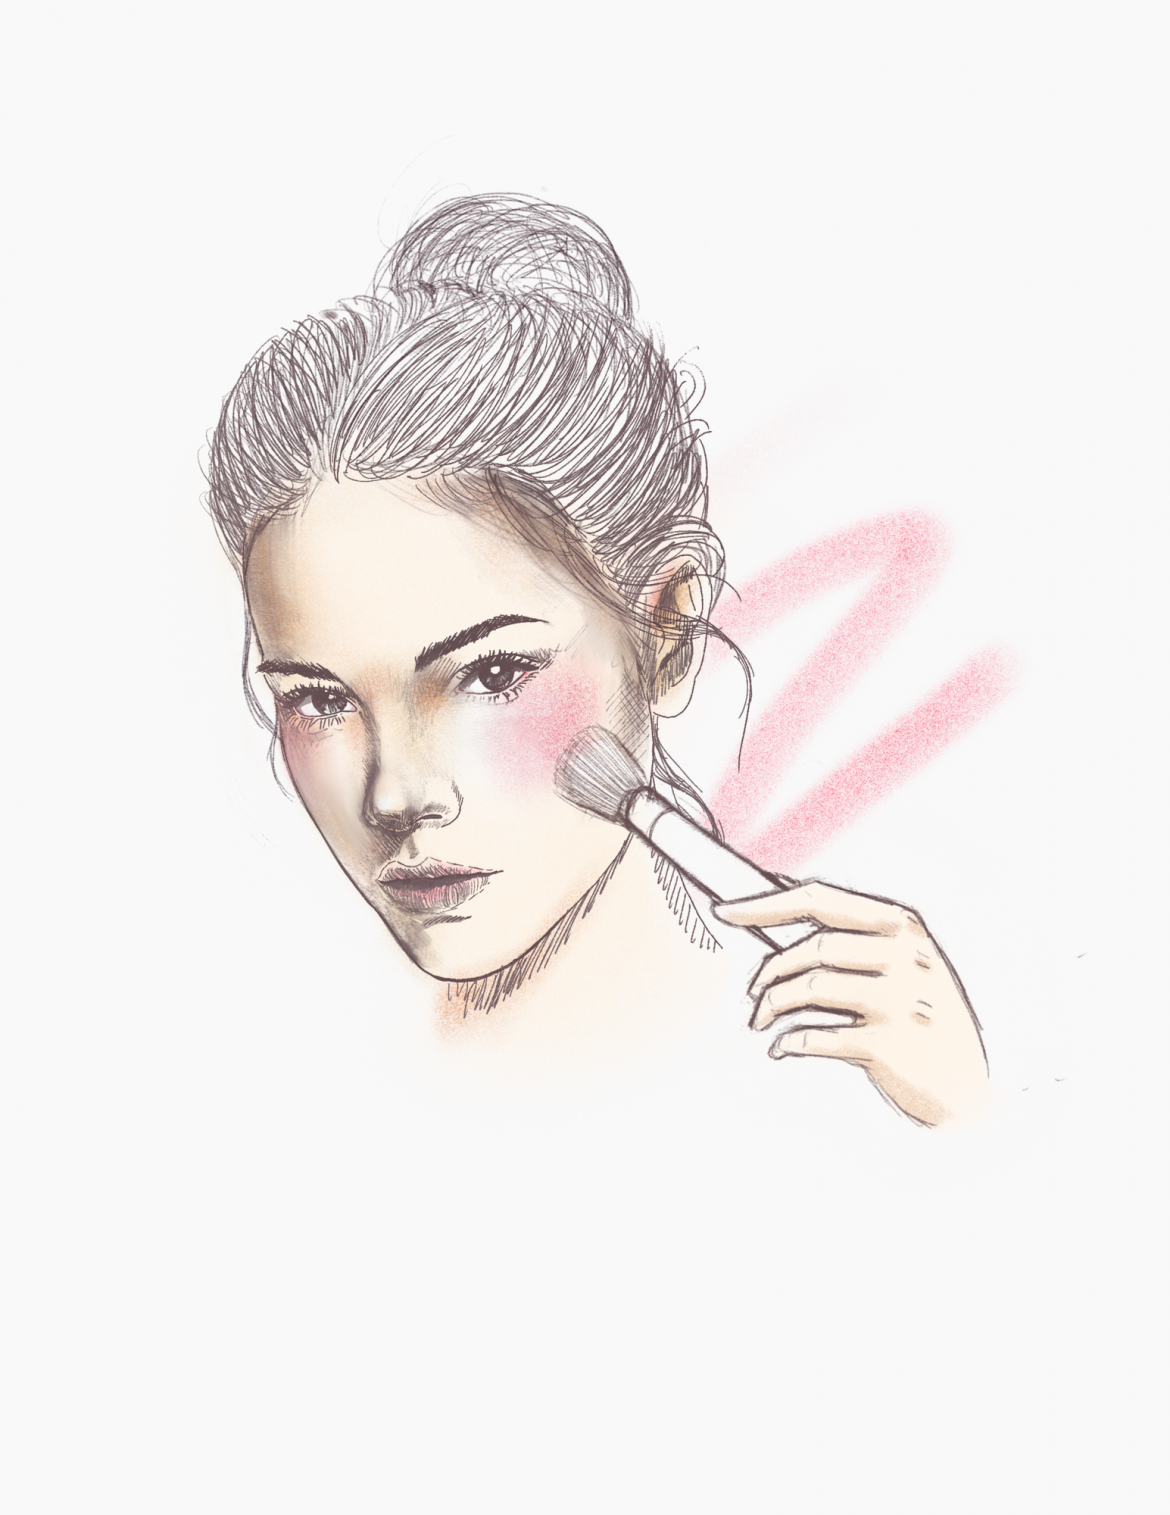 illustration shows a woman putting blush on